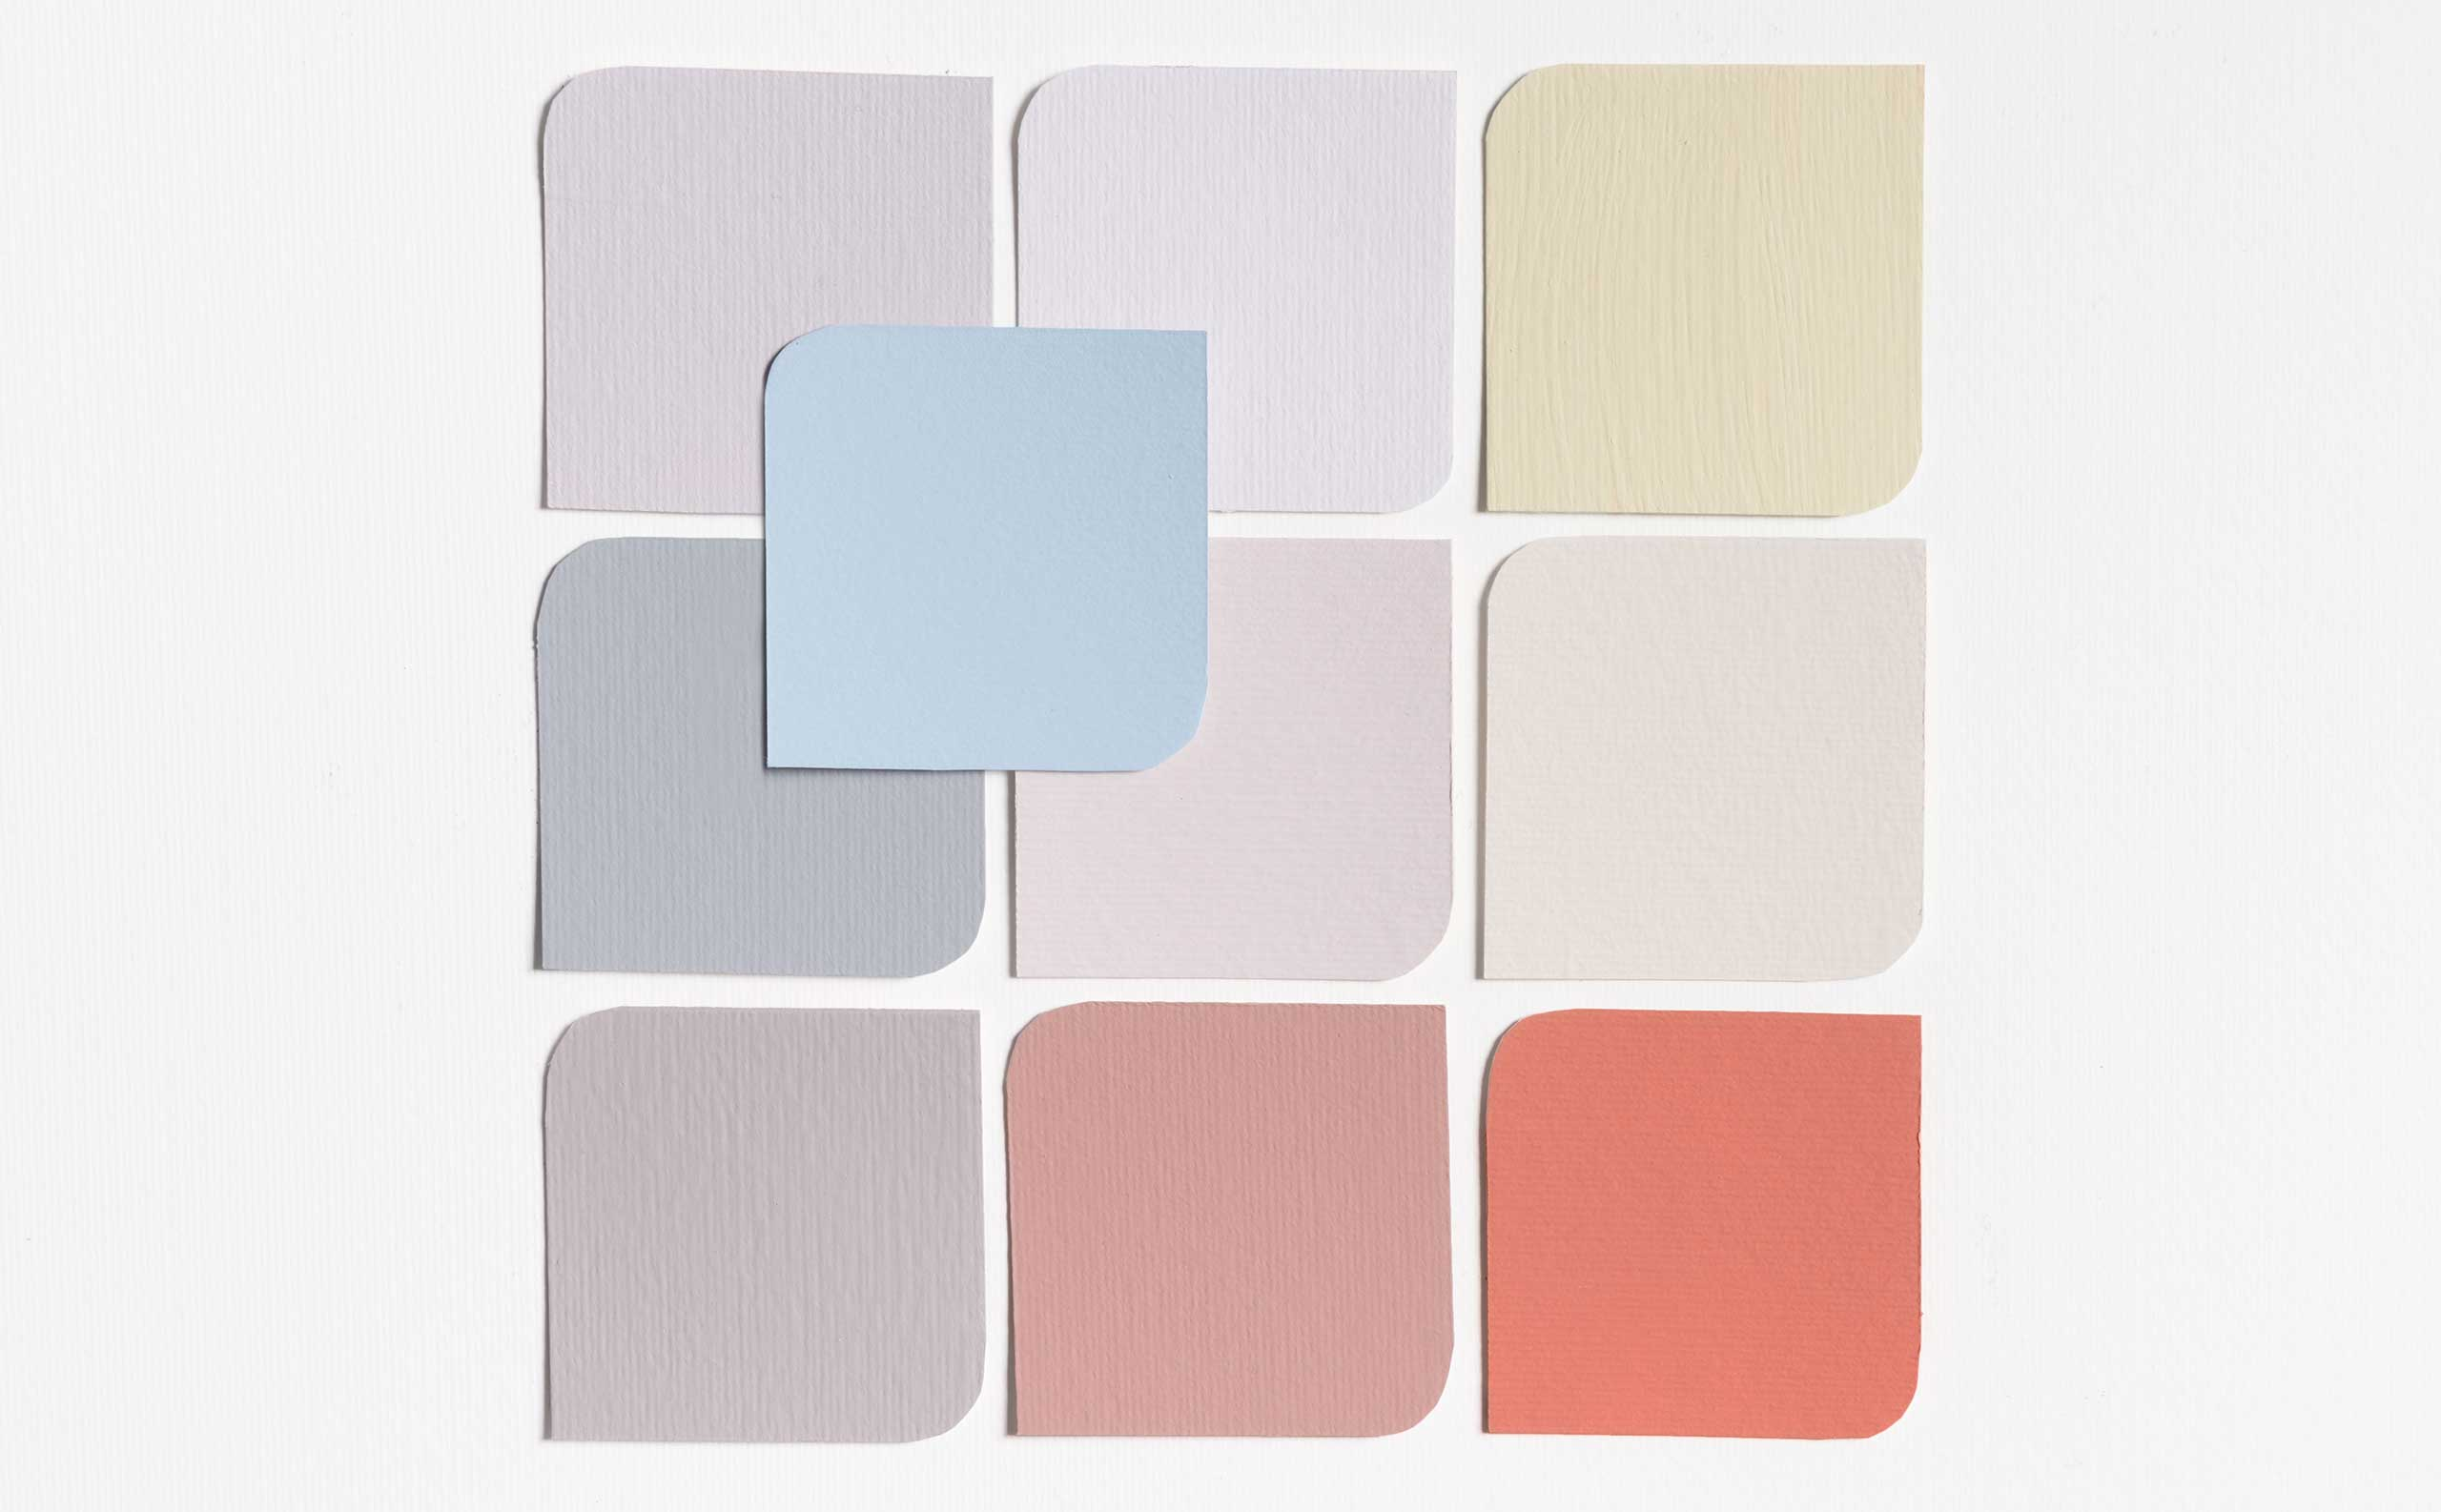 _Dulux-Colour-Futures-Colour-of-the-Year-2022-The-Studio-Colours-Inspiration-Global-210P